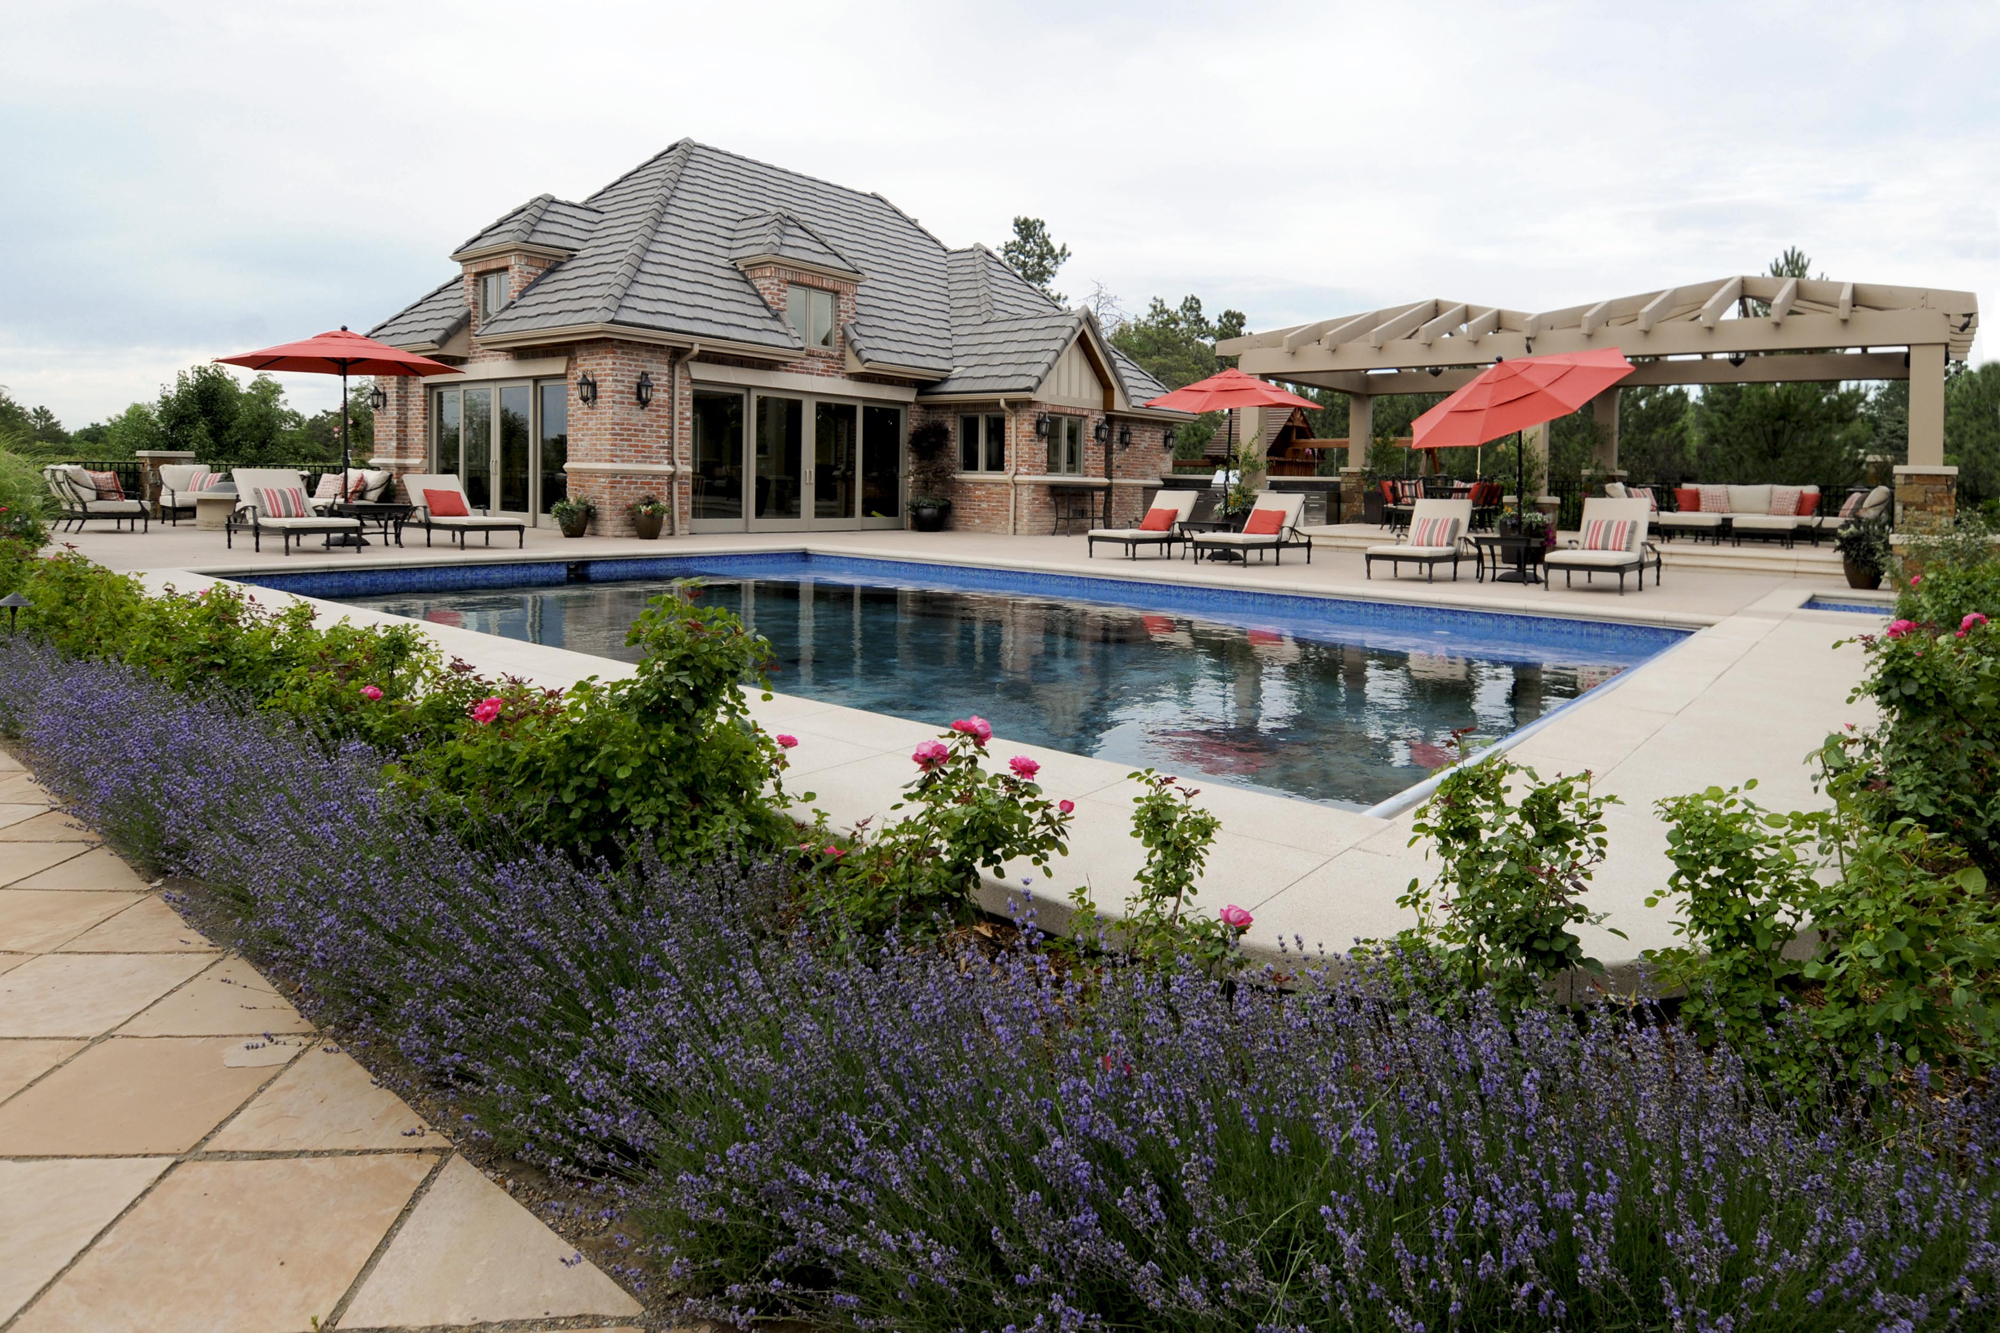 <f>Services</f><f>LandscapeArchitecture</f></f><f>Markets</f><f>Residential</f><t>Private Residence - Cherry Hills</t><m>Denver, CO</m>